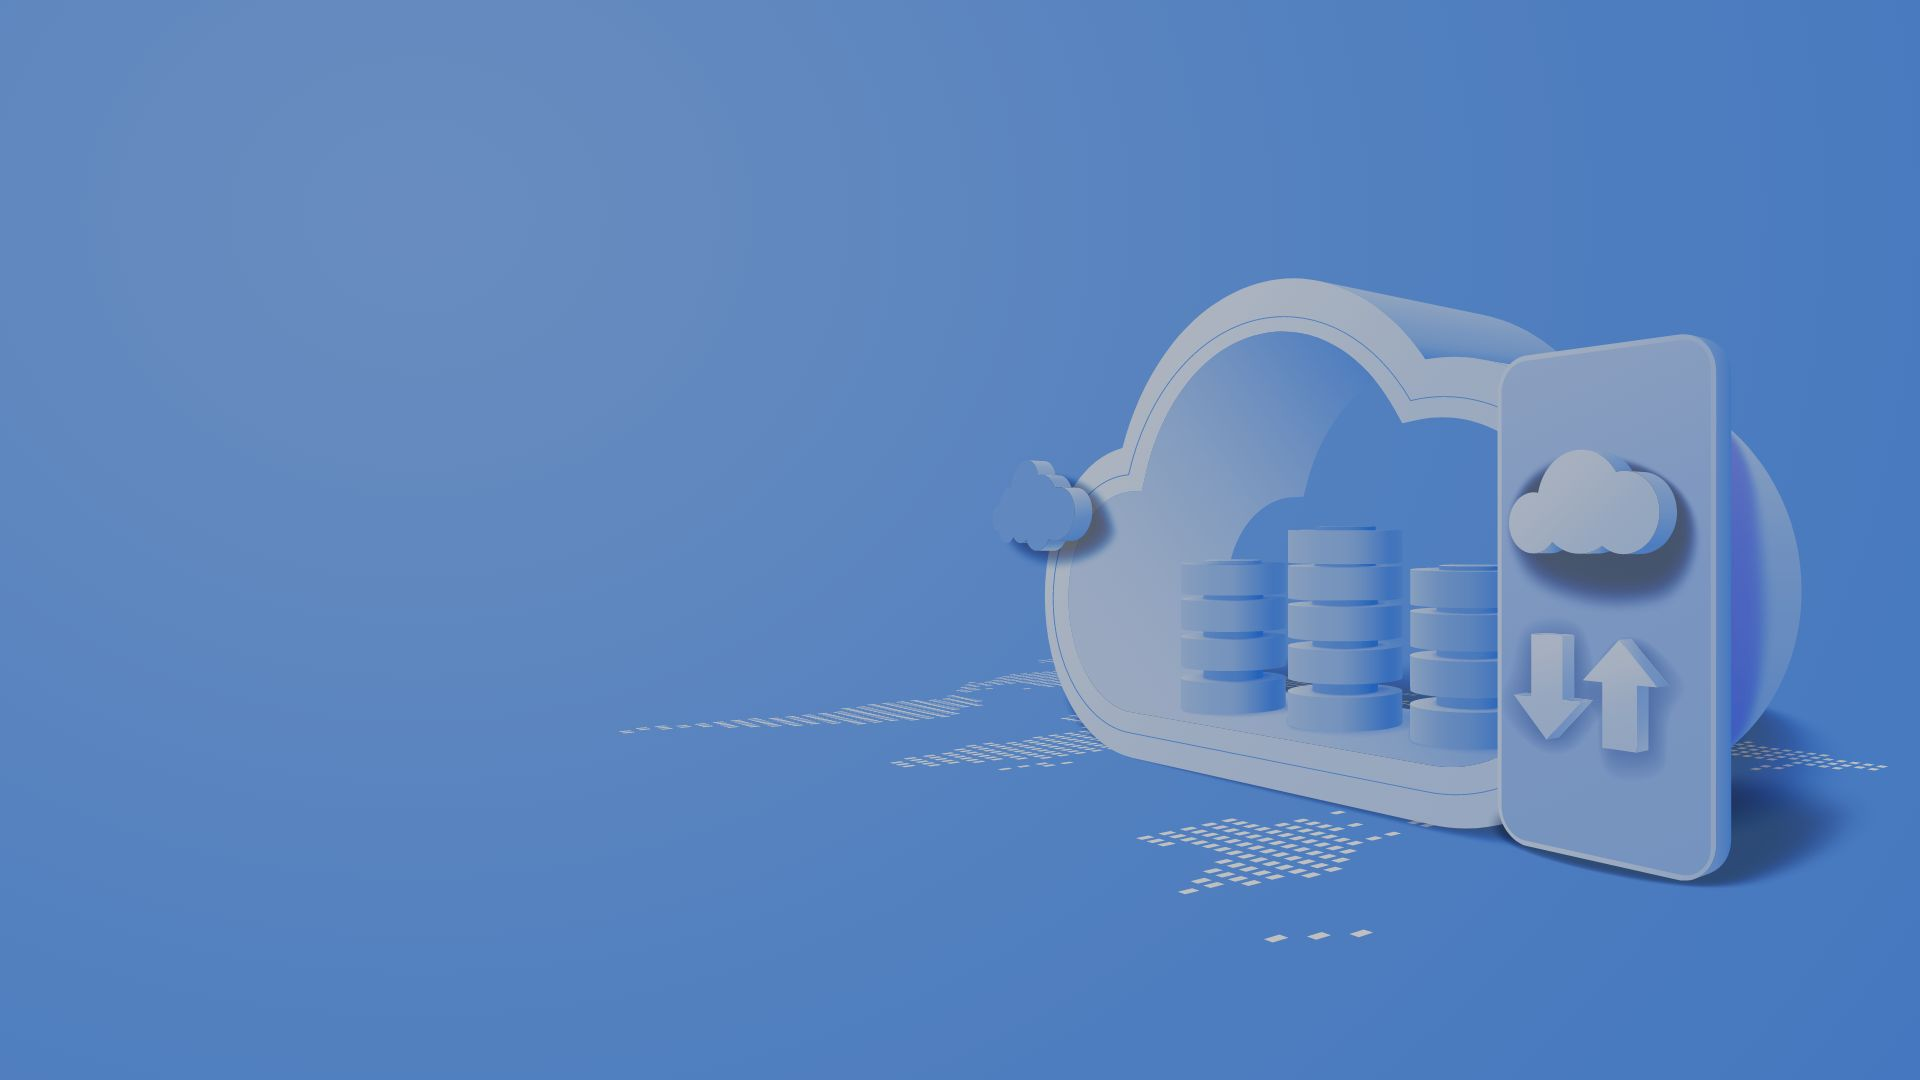 Data Safety Over Cloud Infrastructure